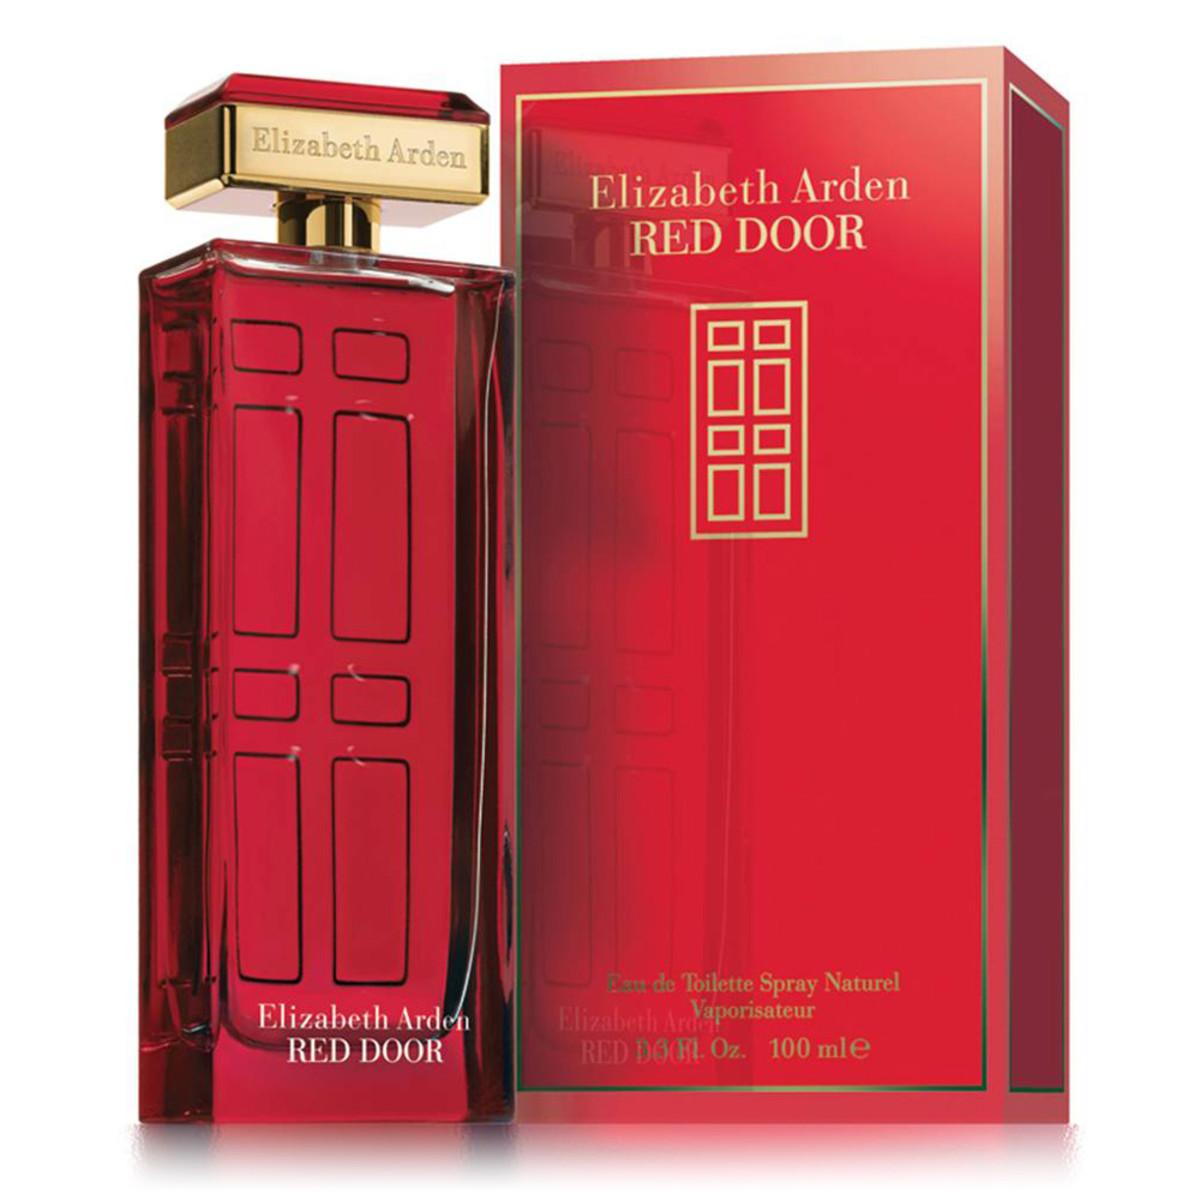 Red Door by Elizabeth Arden